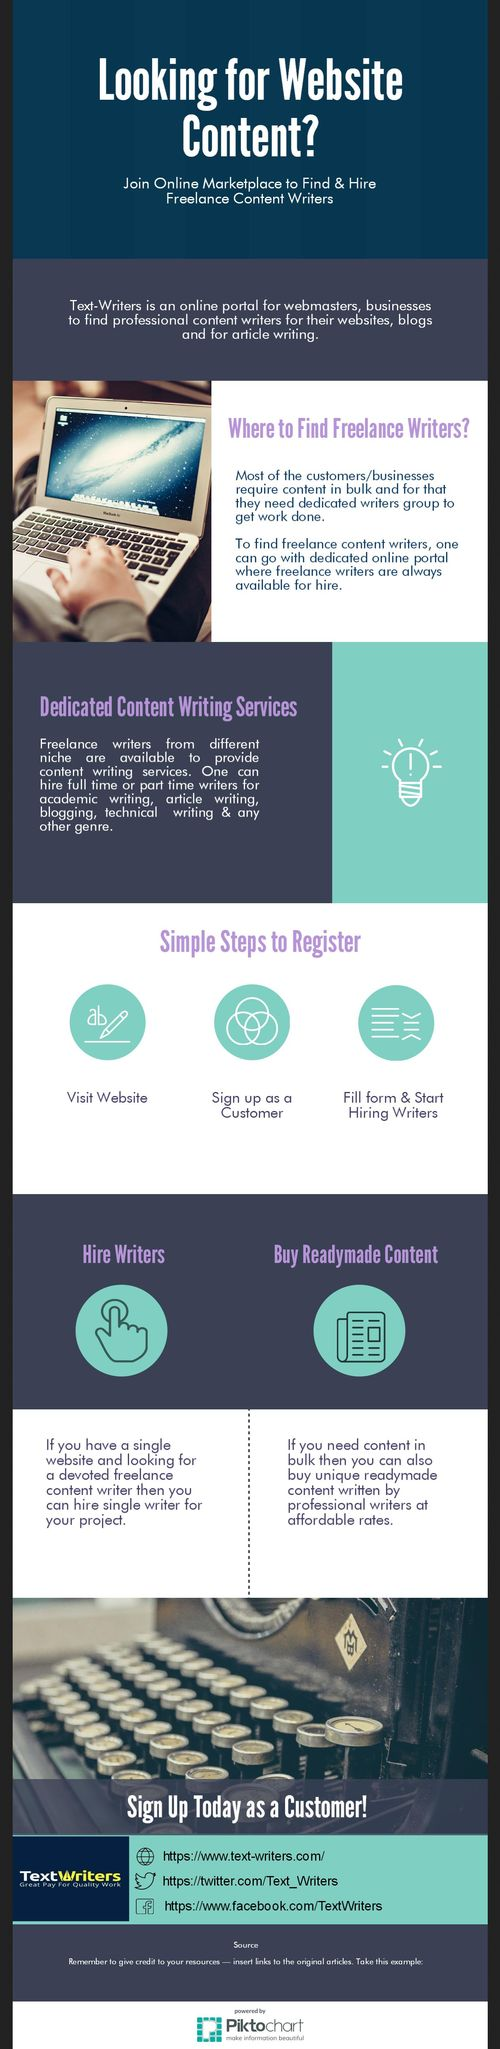 How to Hire a Freelance Content Writer